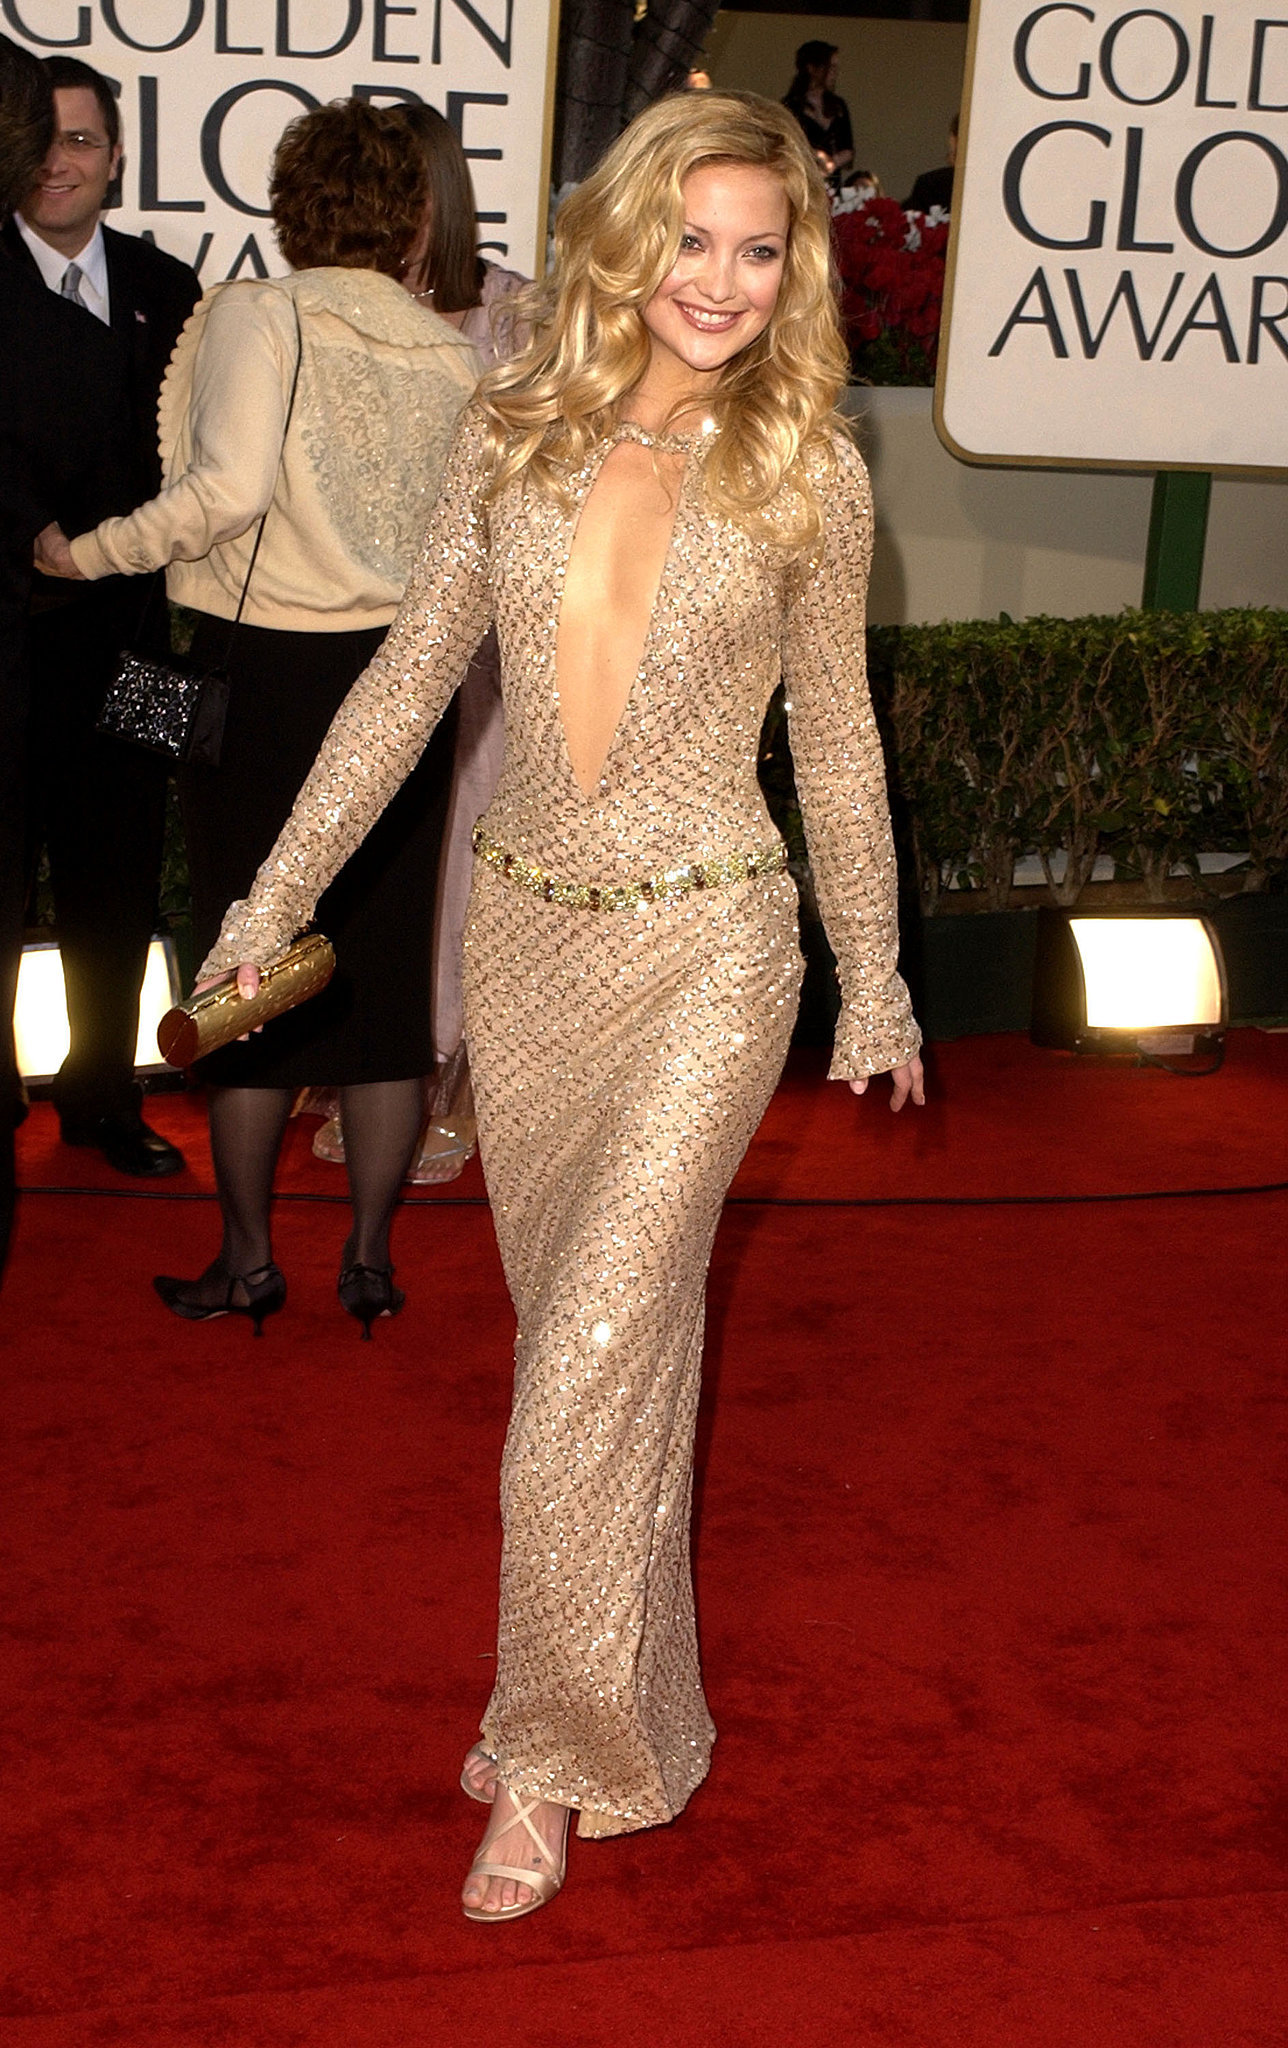 Kate Hudson in Versace at the Golden Globe Awards